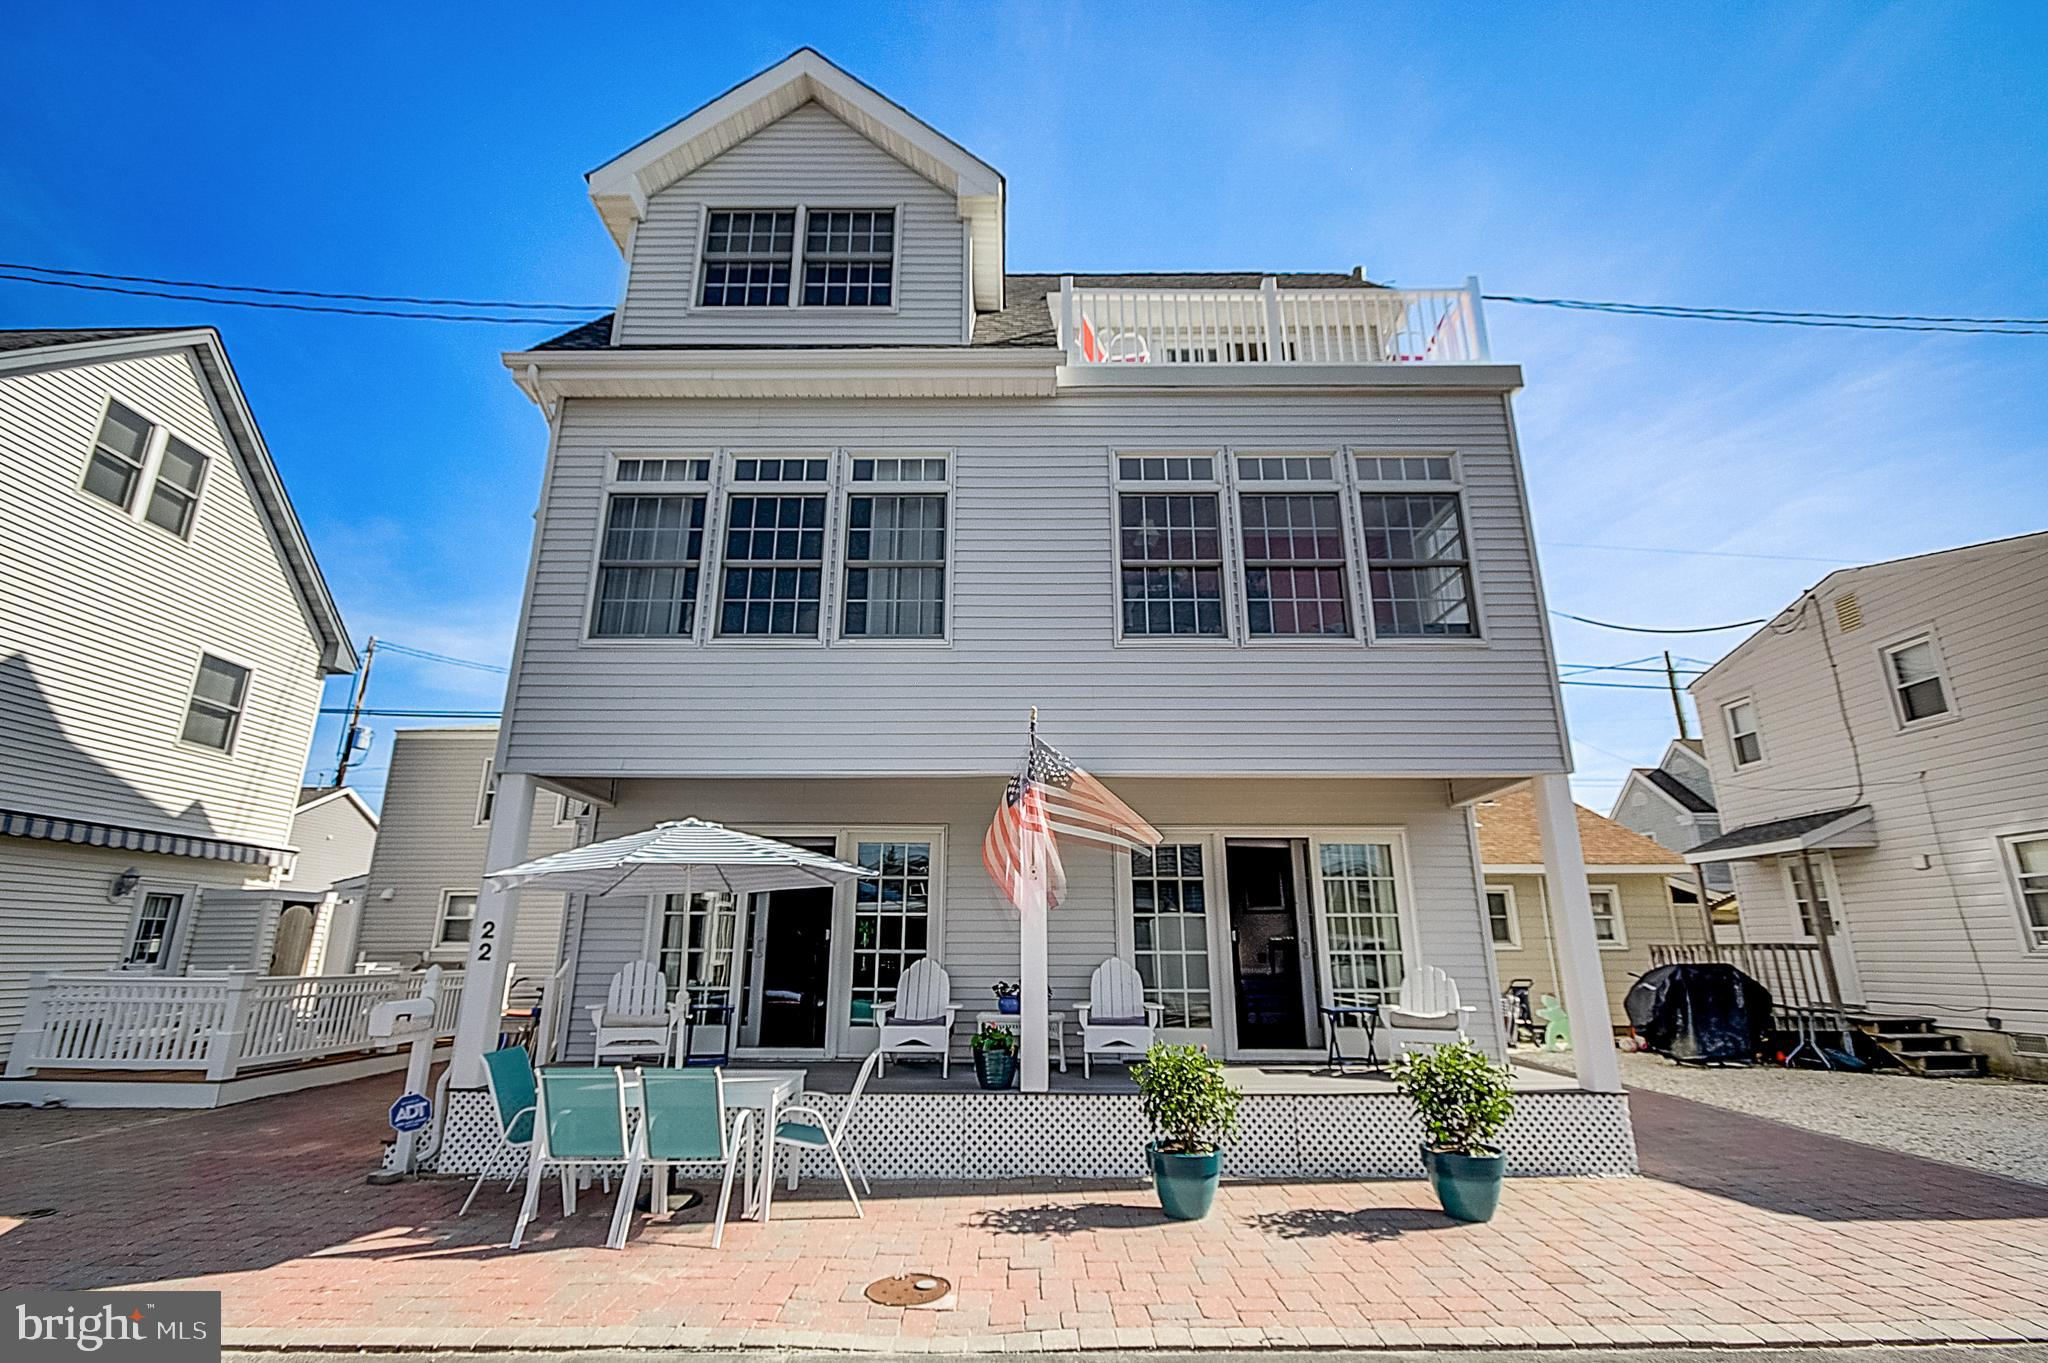 22 CATALINA DRIVE, LAVALLETTE, NJ 08735